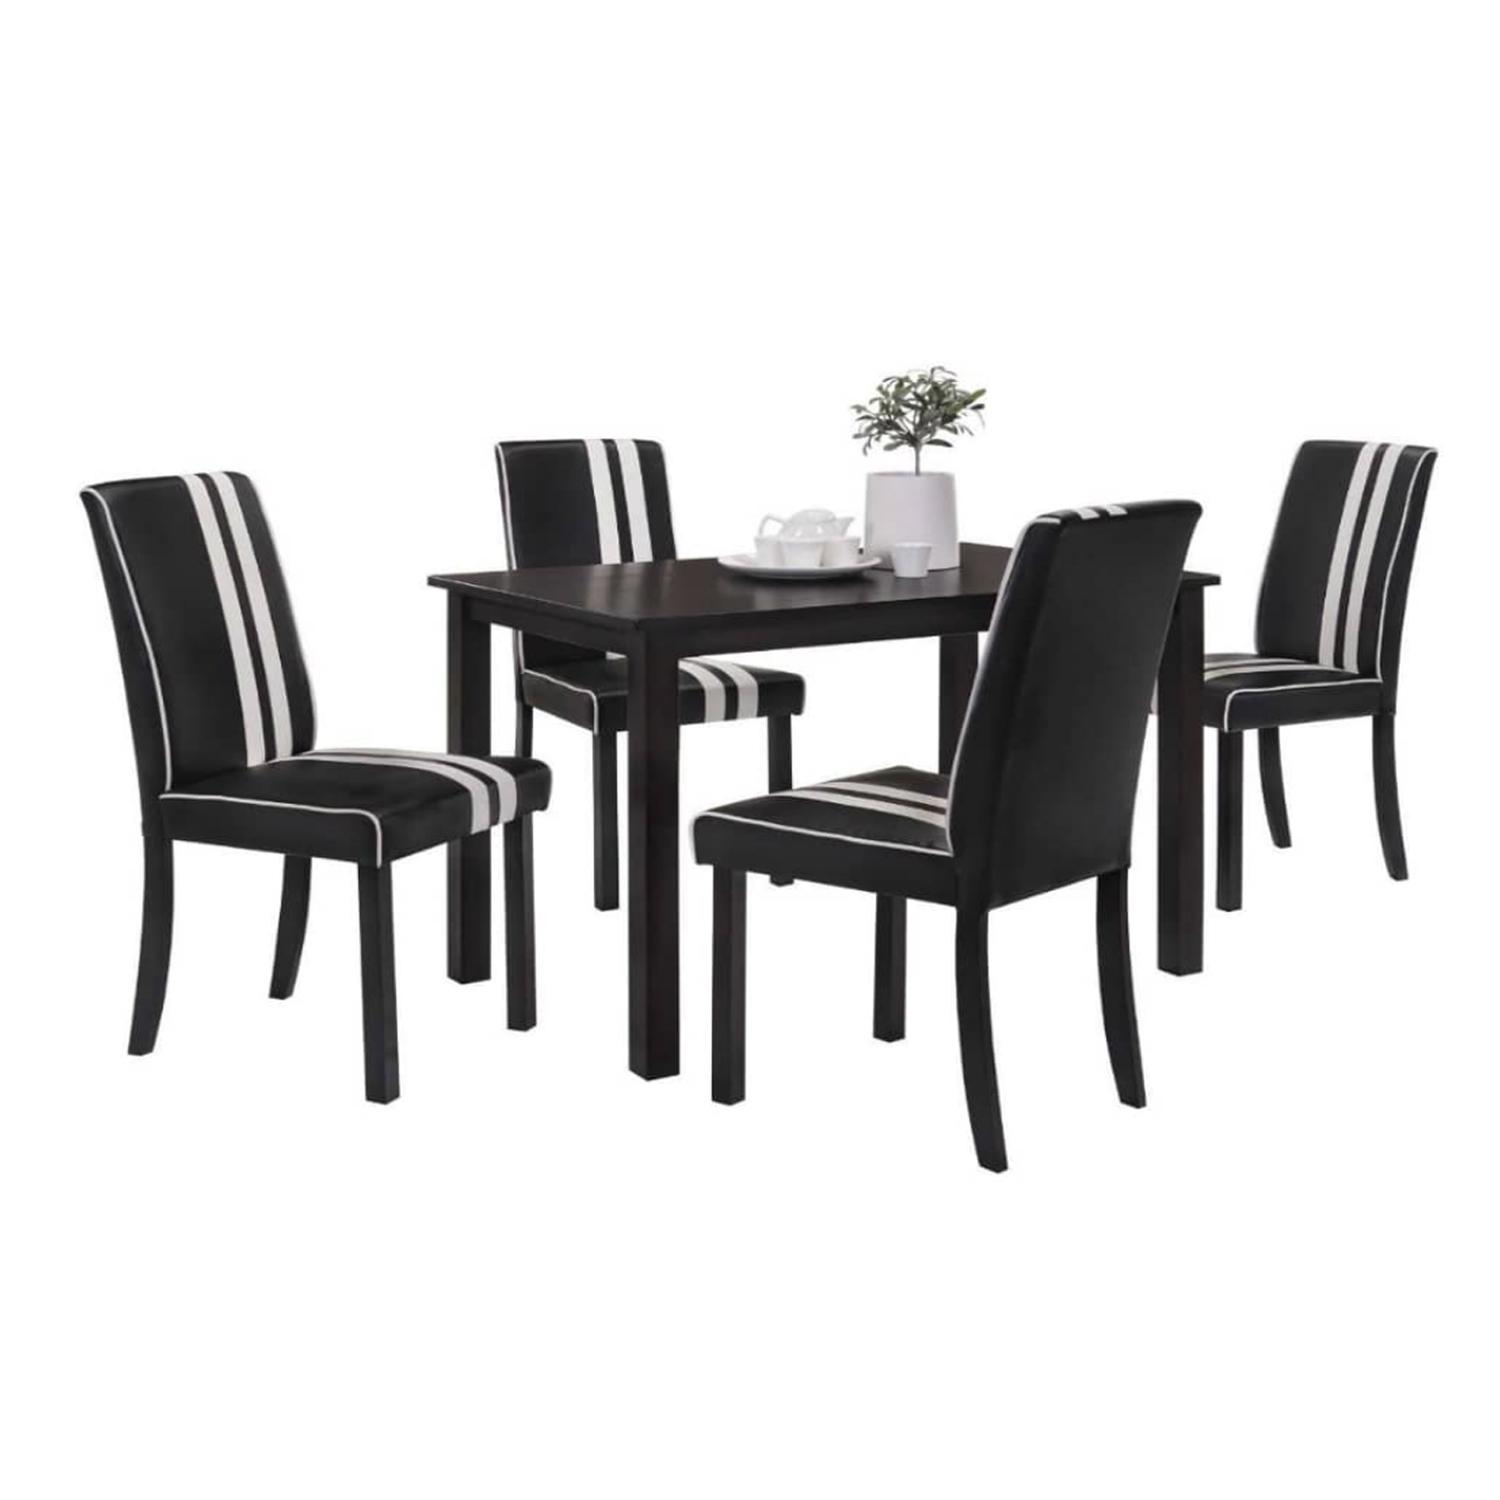 LIVING MALL_Polly Dining Set_1+4_FREE DELIVERY